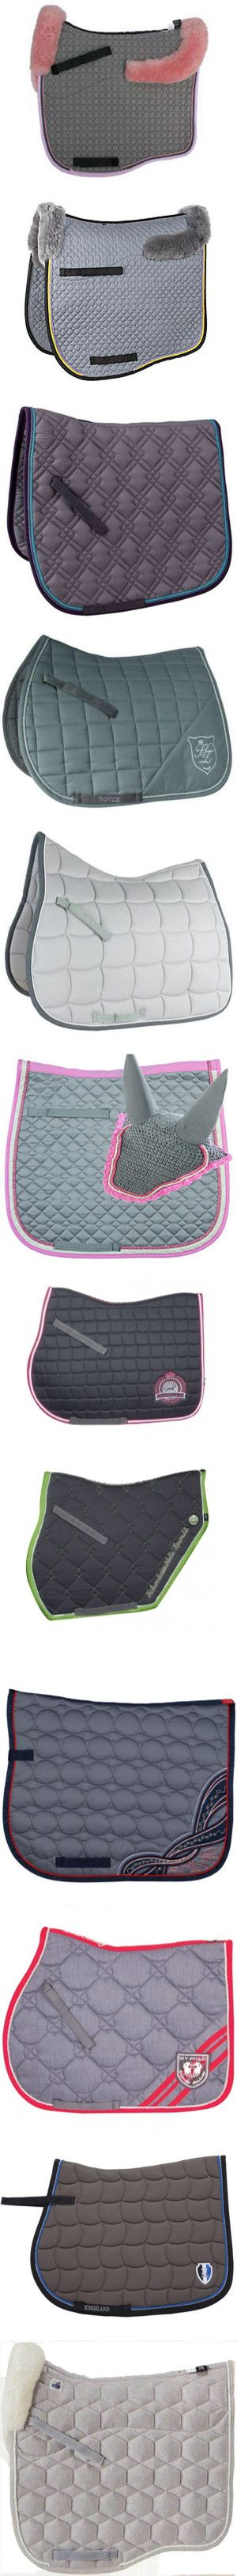 SADDLE PADS2 by jaskm on Polyvore featuring horse, grey, tack, women's fashion, accessories, saddle pad, home, home decor, tops and purple top